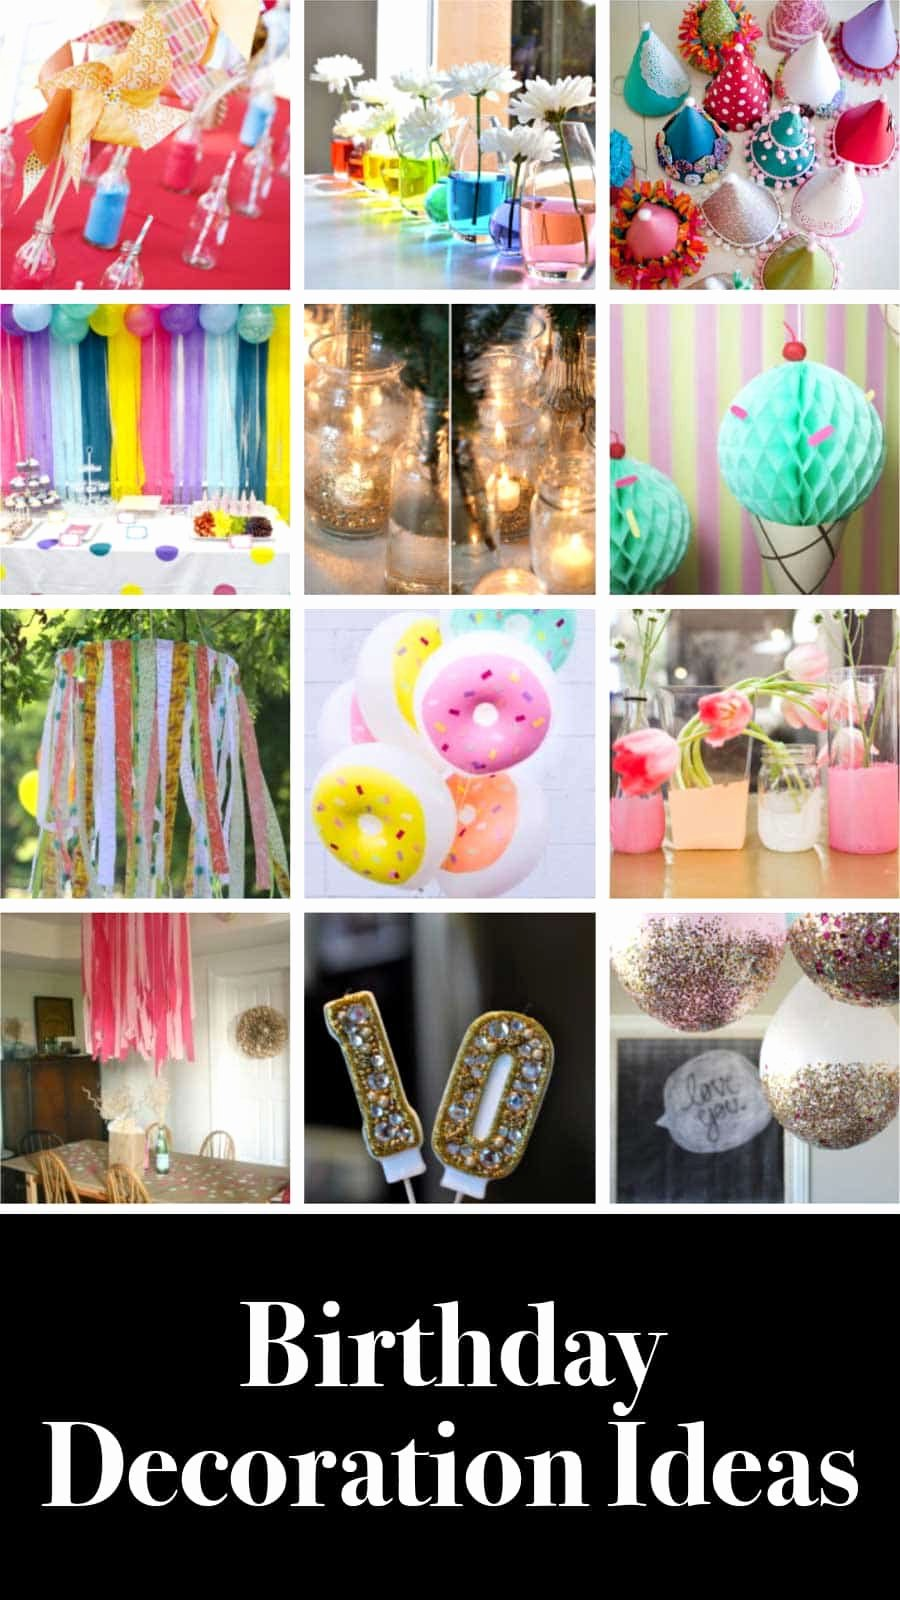 Birthday Decoration Ideas with Pictures Lovely 12 Easy Diy Birthday Decoration Ideas 2020